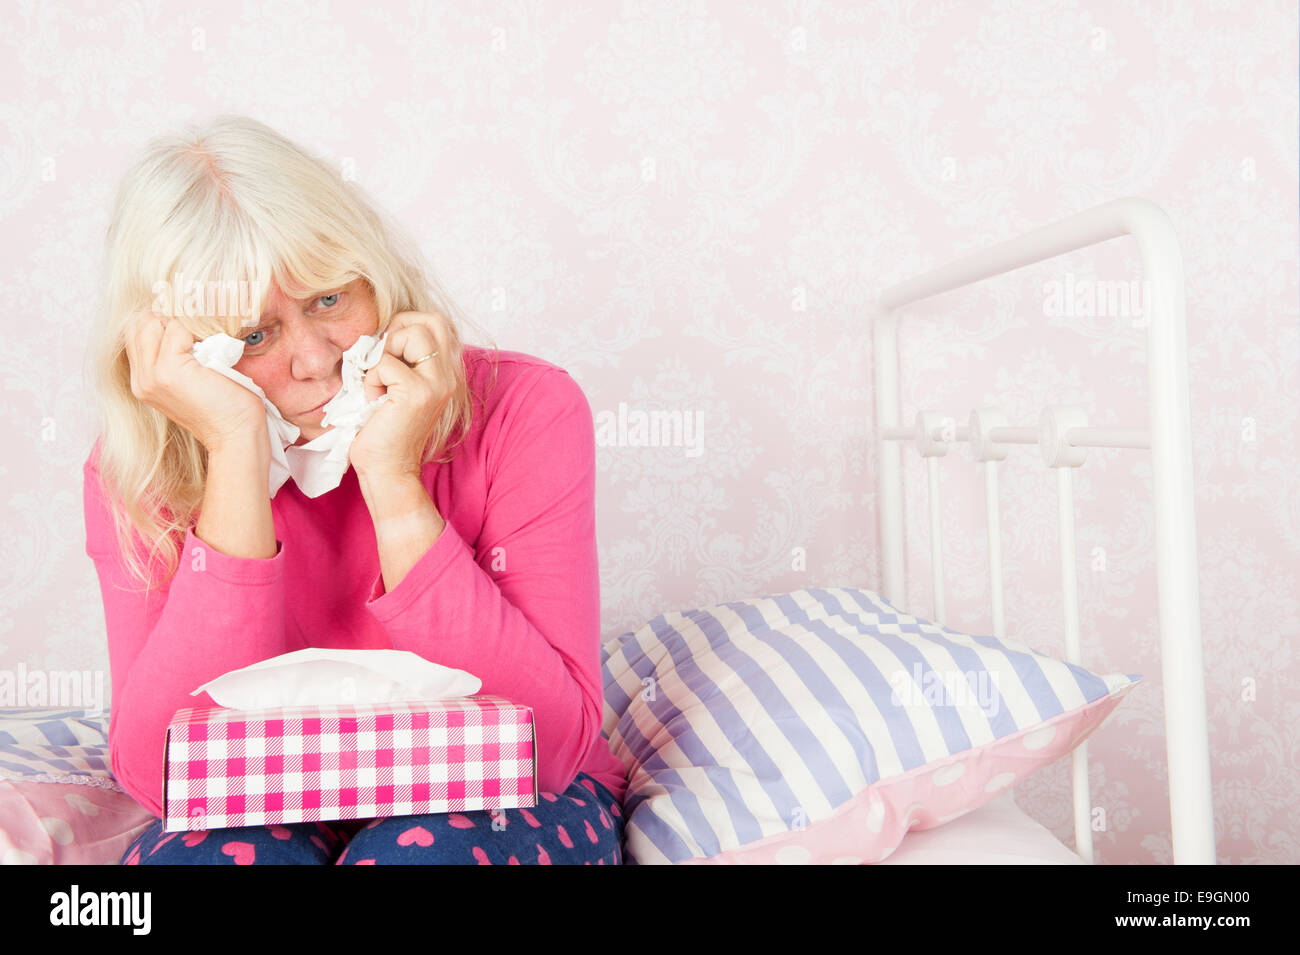 Sad woman with pink pyjama and tissues sitting on edge of bed - Stock Image